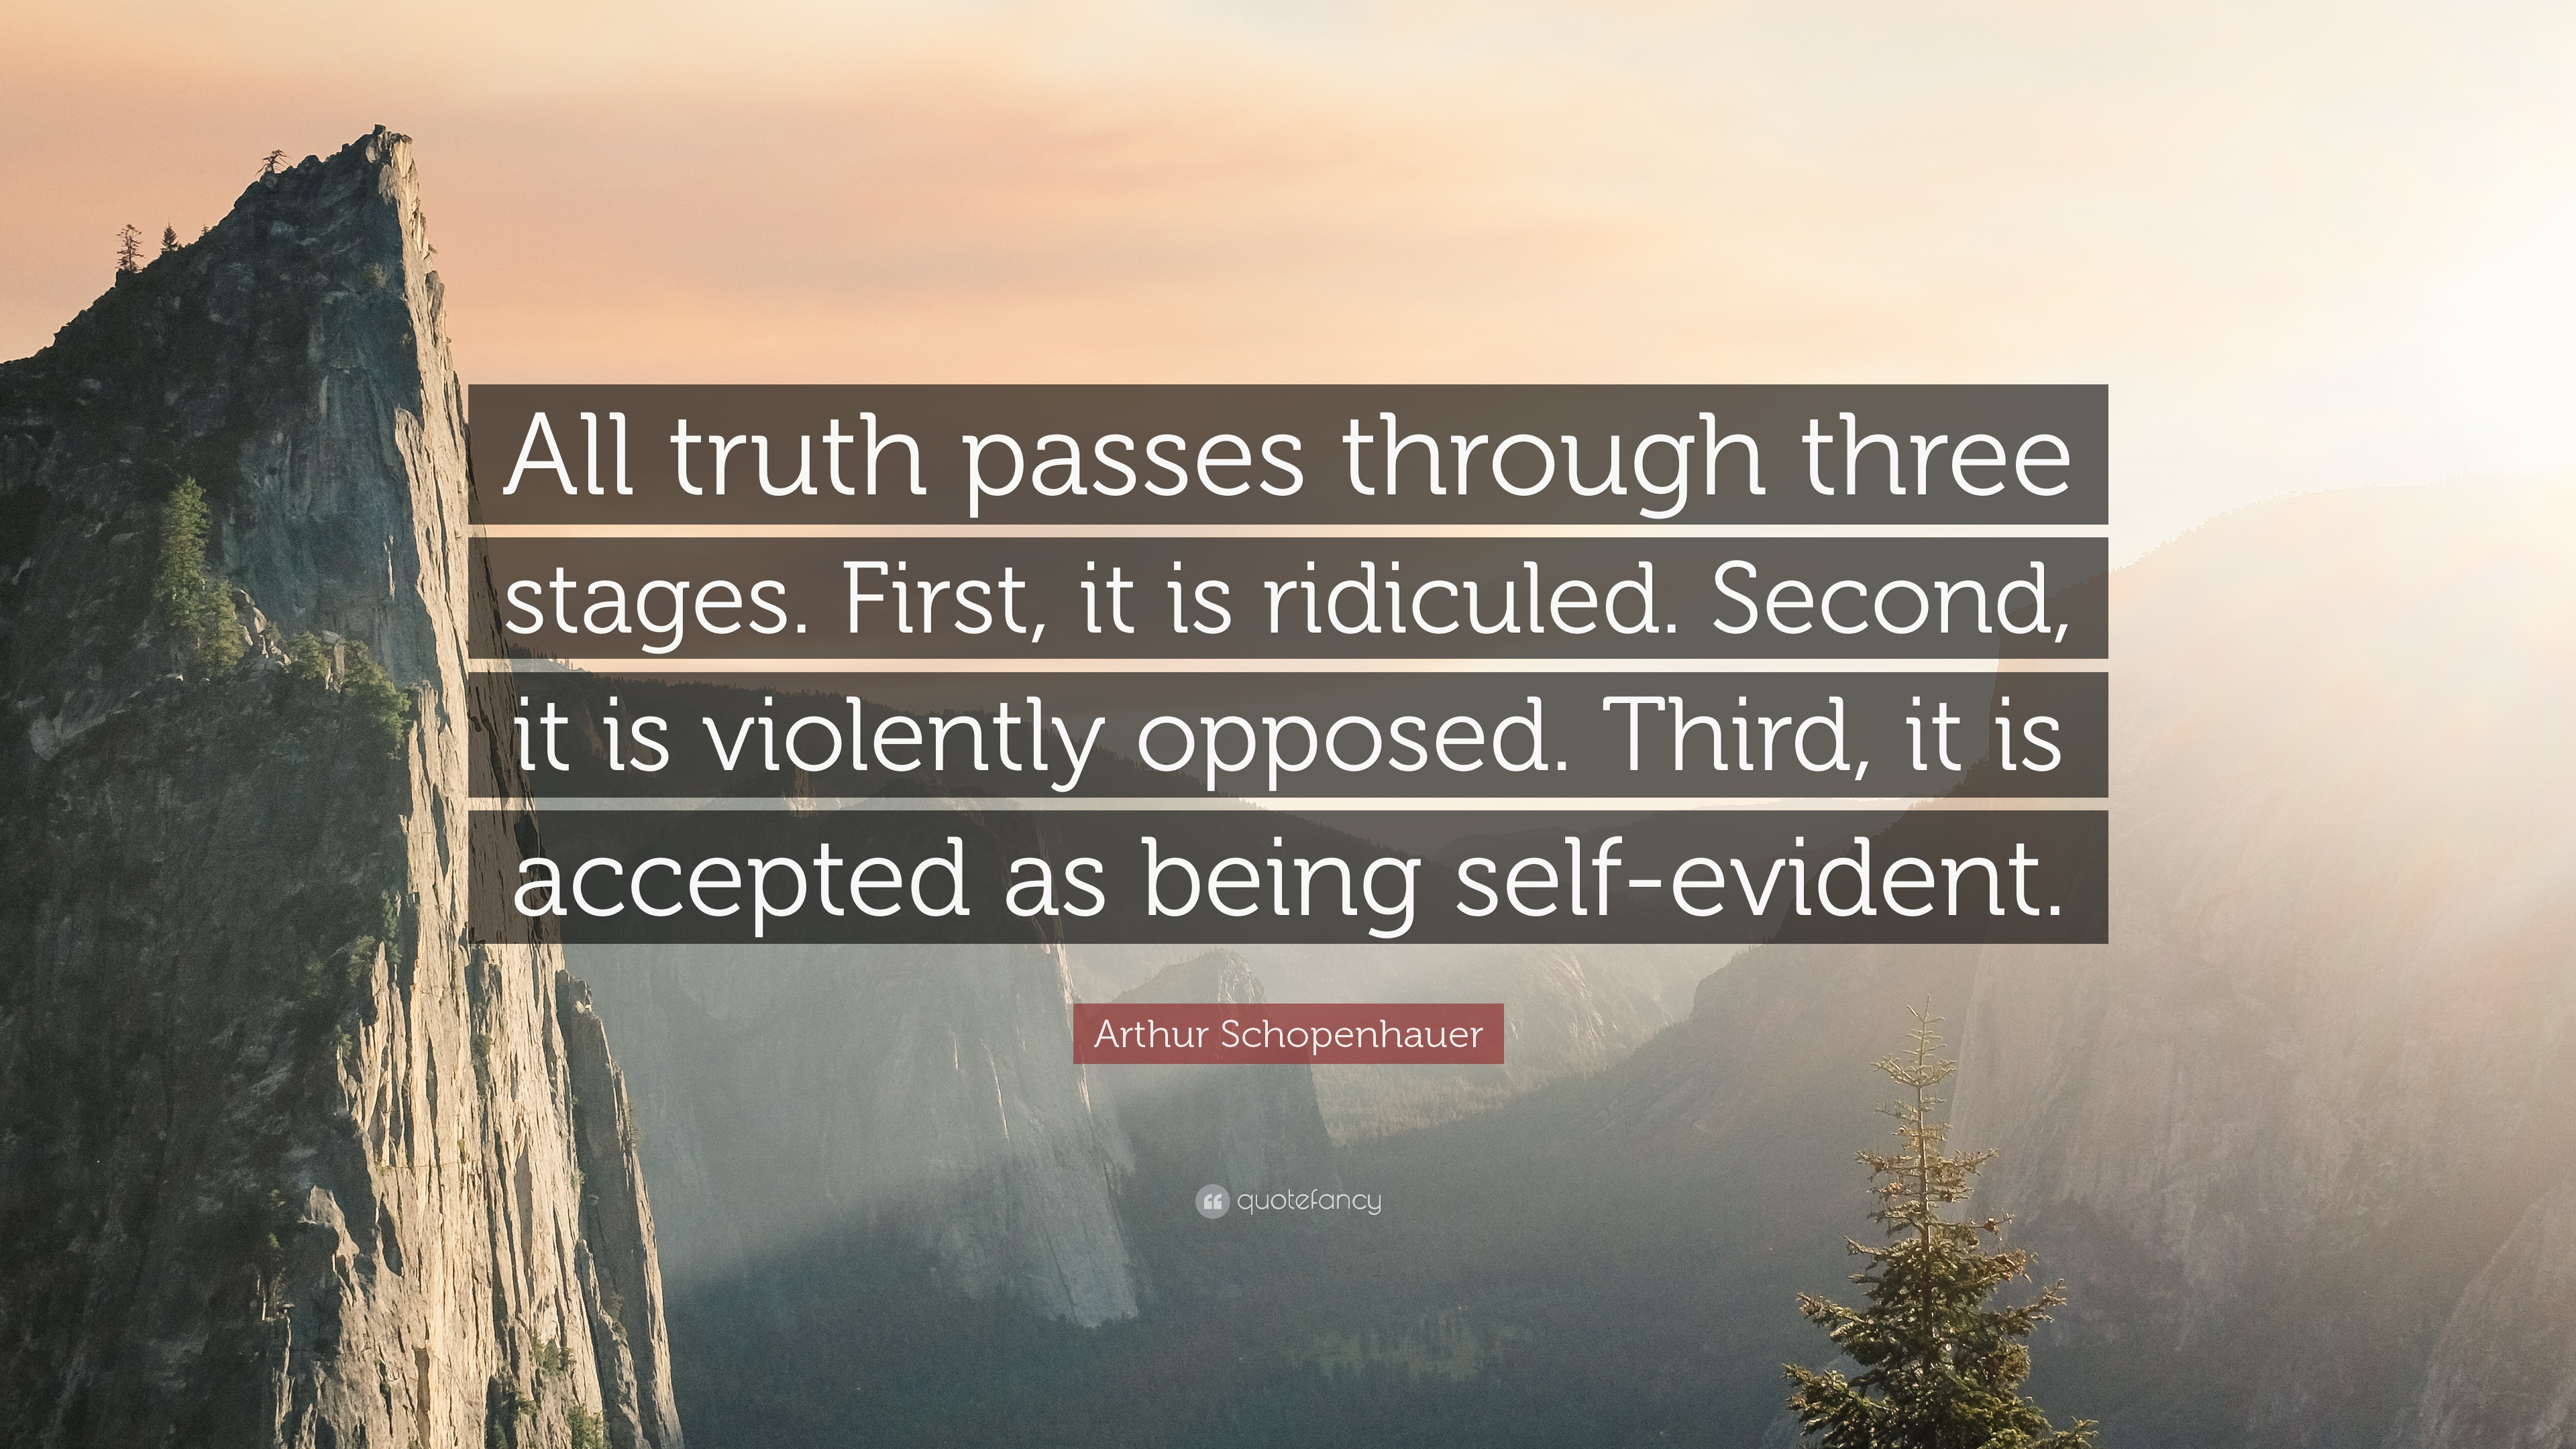 32414-arthur-schopenhauer-quote-all-truth-passes-through-three-stages